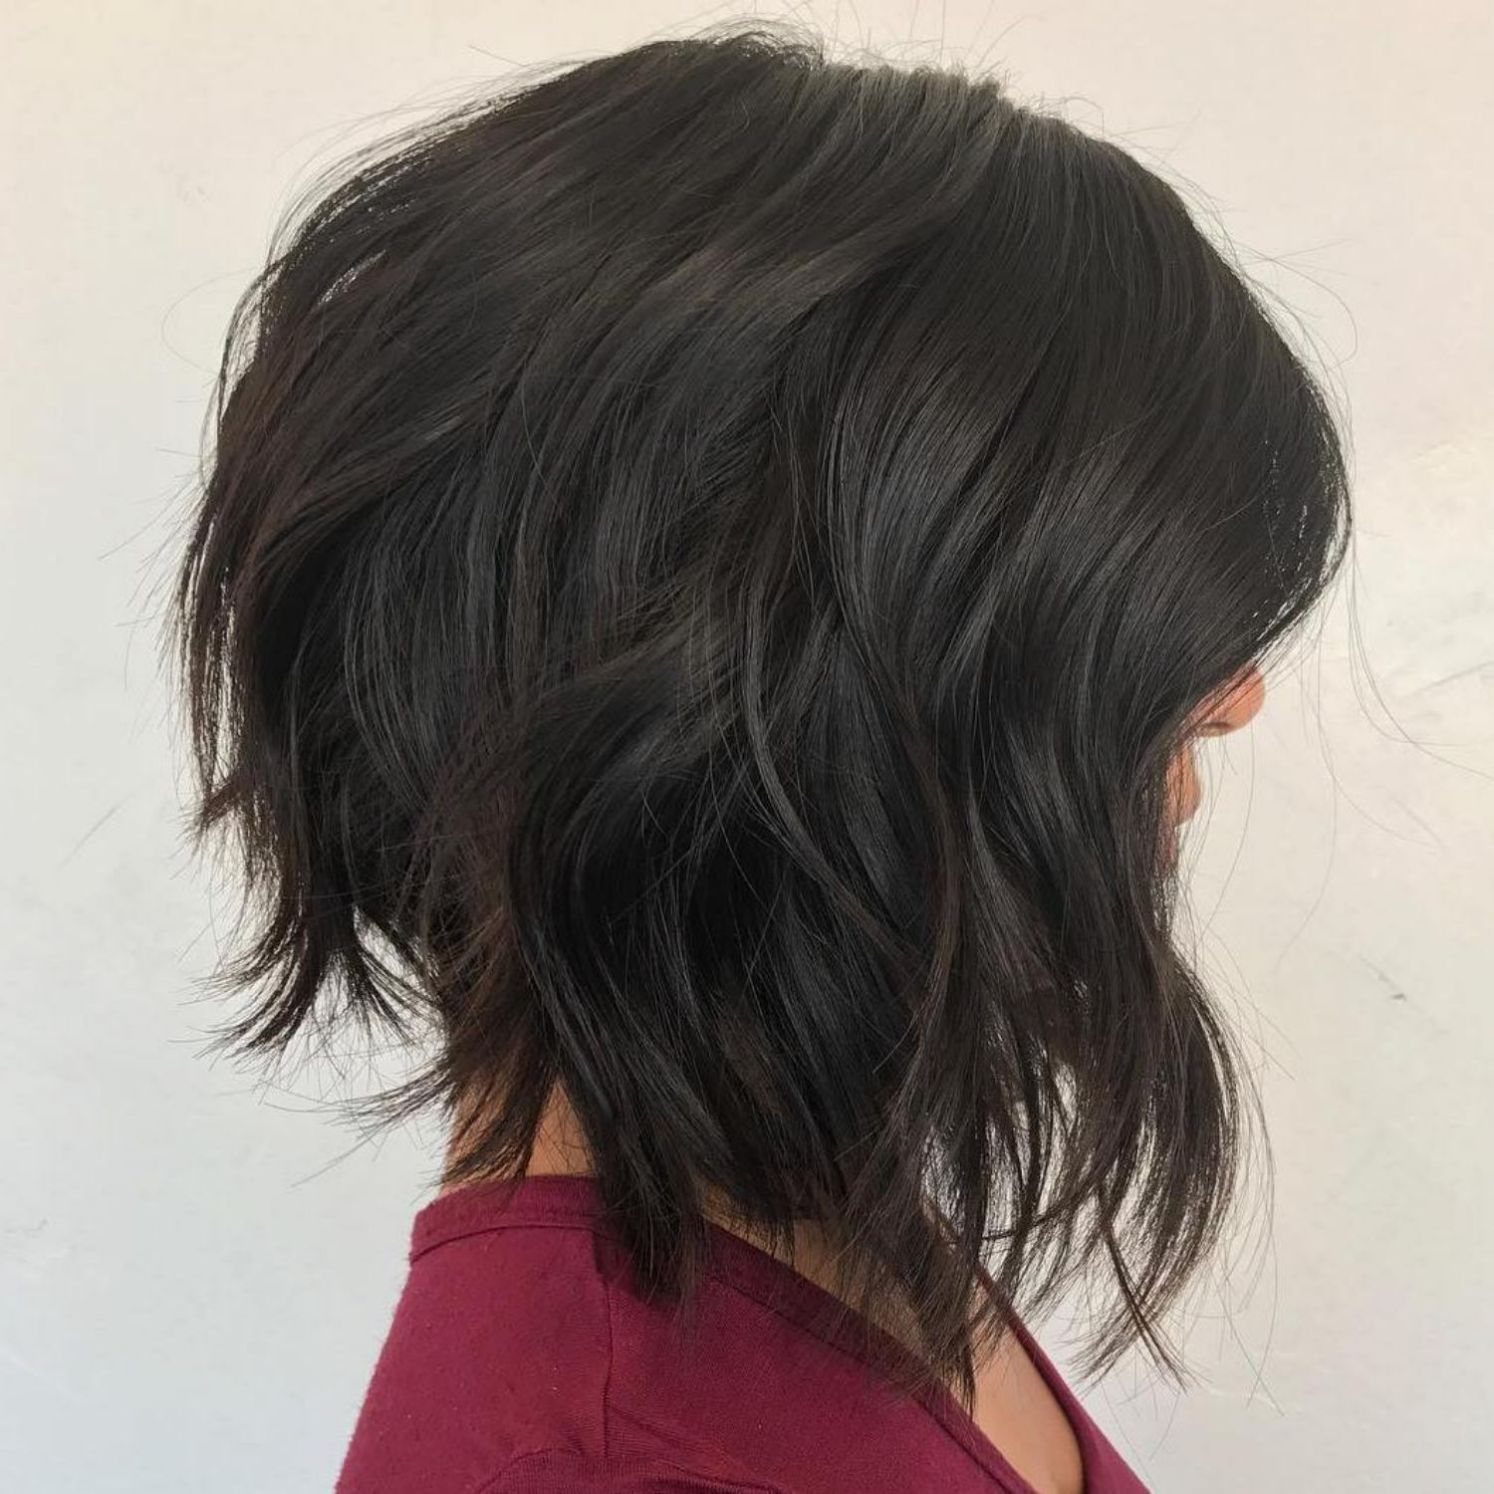 Angled Bob For Thick Hair Haircut For Thick Hair Thick Hair Styles Bob Hairstyles For Thick